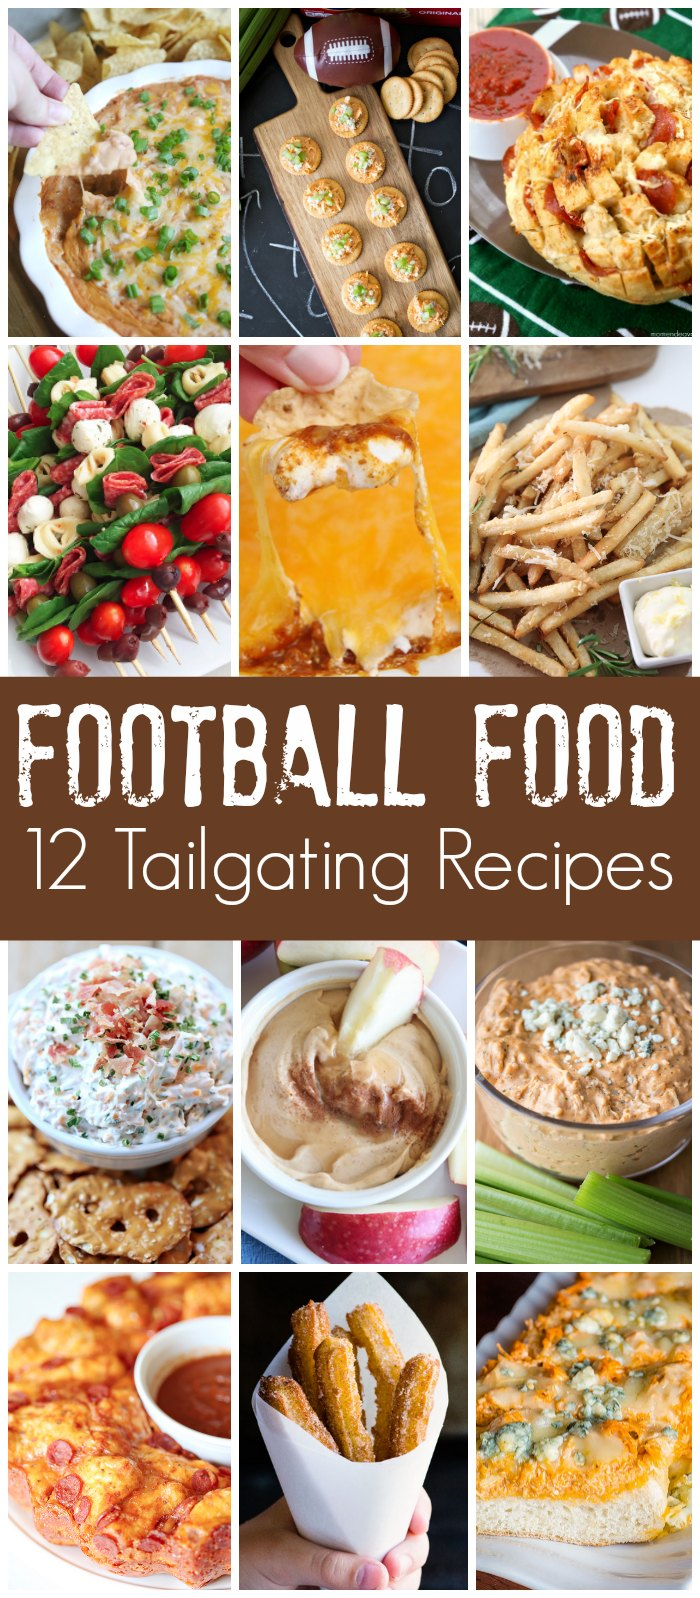 Football Food Tailgating Recipes